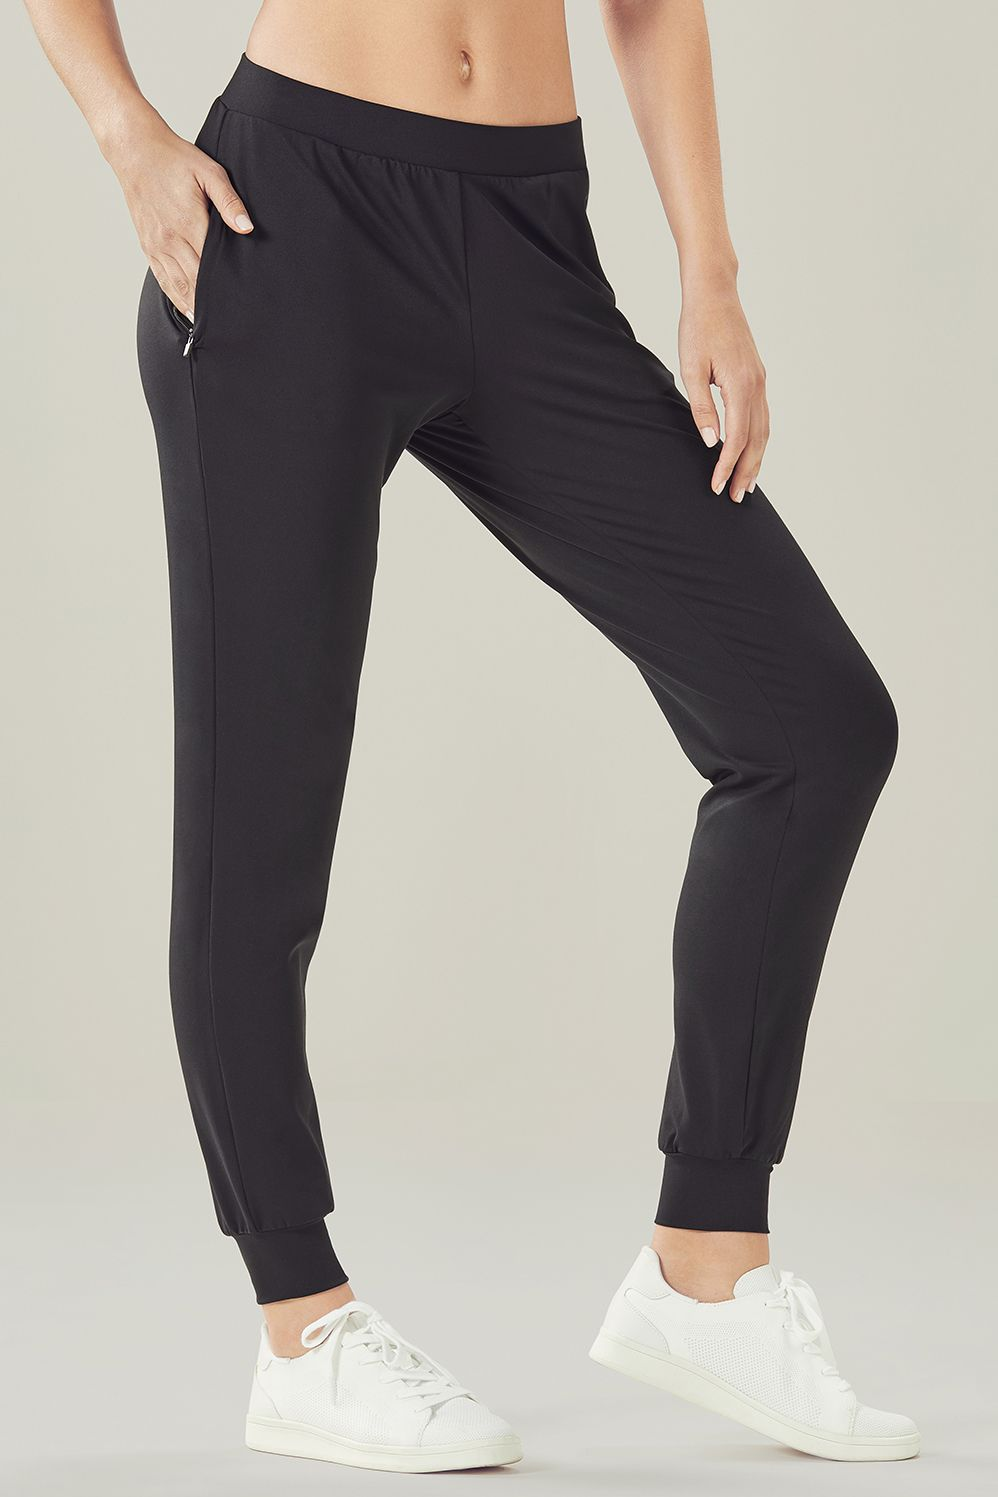 f4f045b986 Fabletics Venetia Jogger Pants Womens Black Size XXL | Products ...